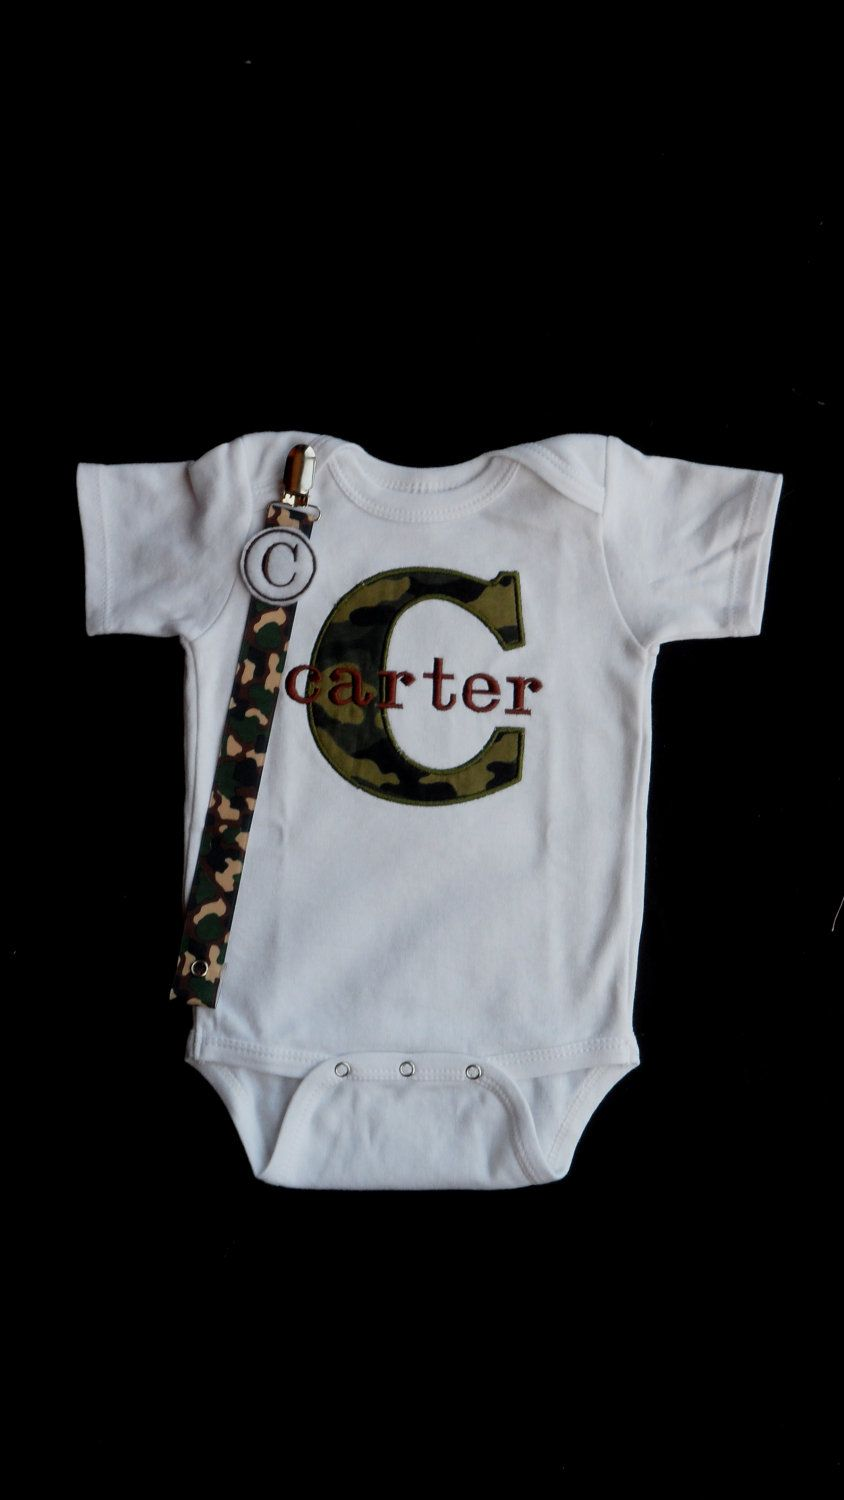 Baby boy gift set with camo monogram onesie and pacifier